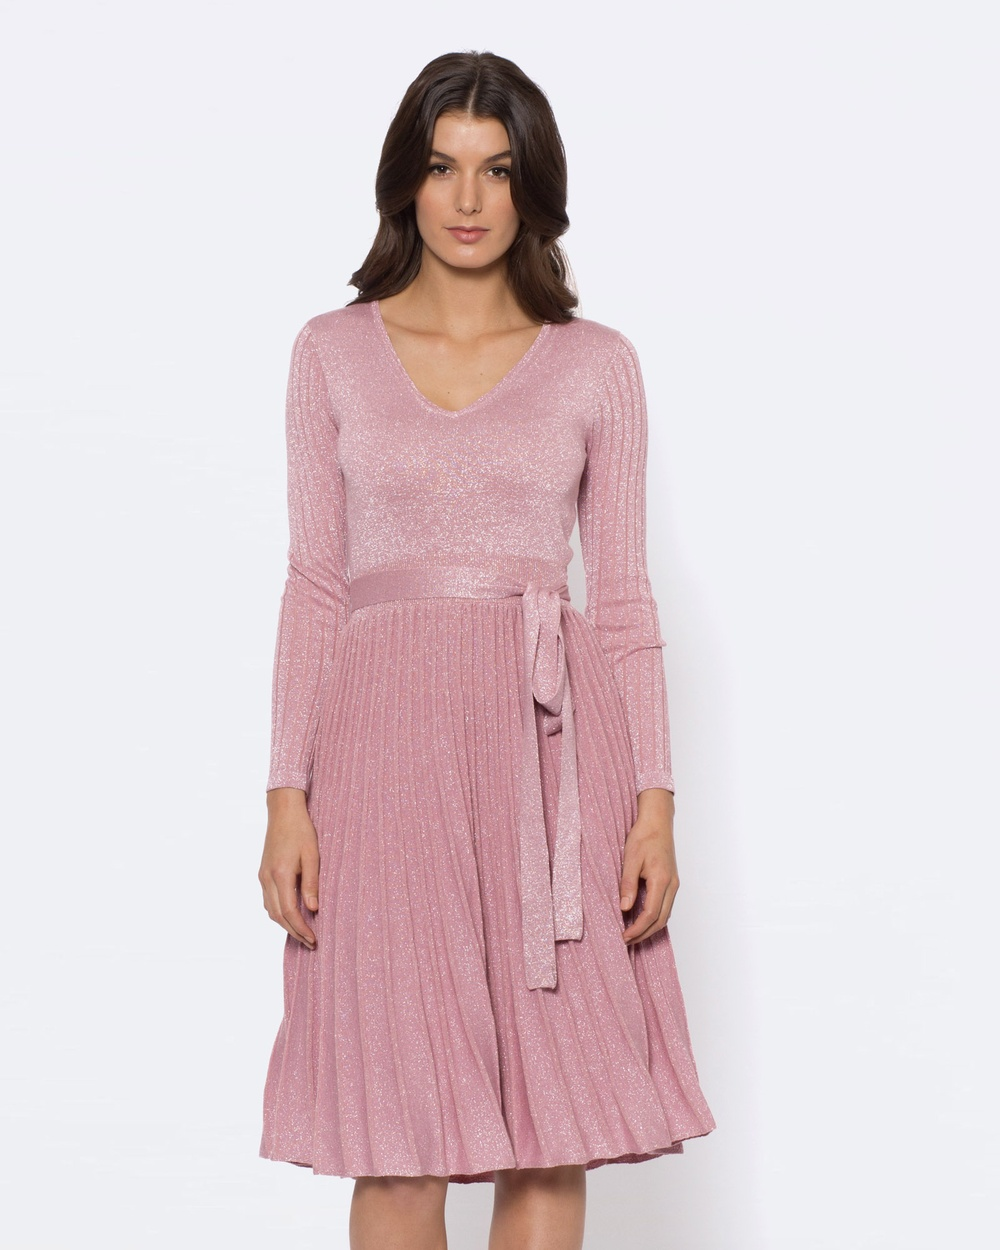 Alannah Hill Pure Beauty Knit Dress Dresses Pink Pure Beauty Knit Dress